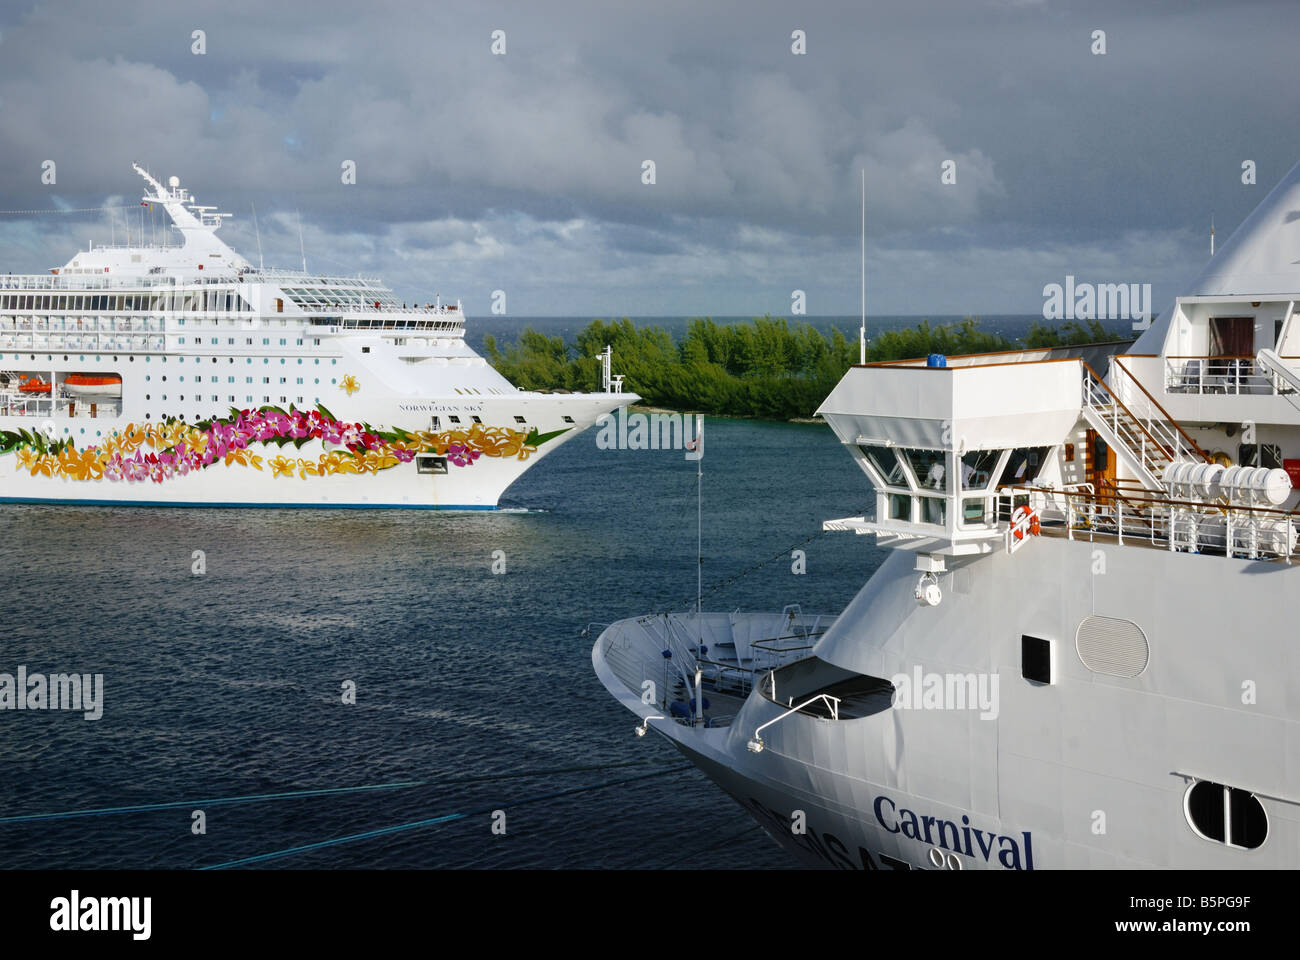 The Norwegian Sky cruise ship passes by a docked Carnival cruise ship in Nassau, Bahamas. - Stock Image